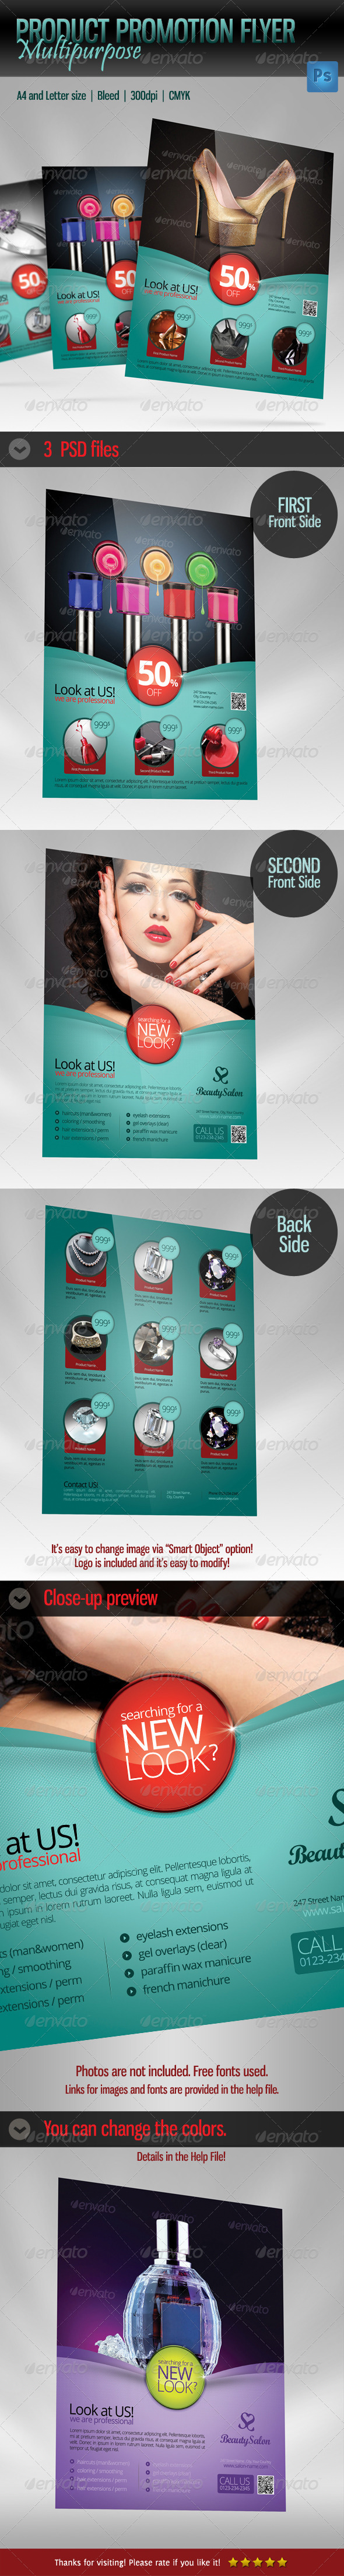 GraphicRiver Product Promotion Flyer Template Multipurpose 4758278